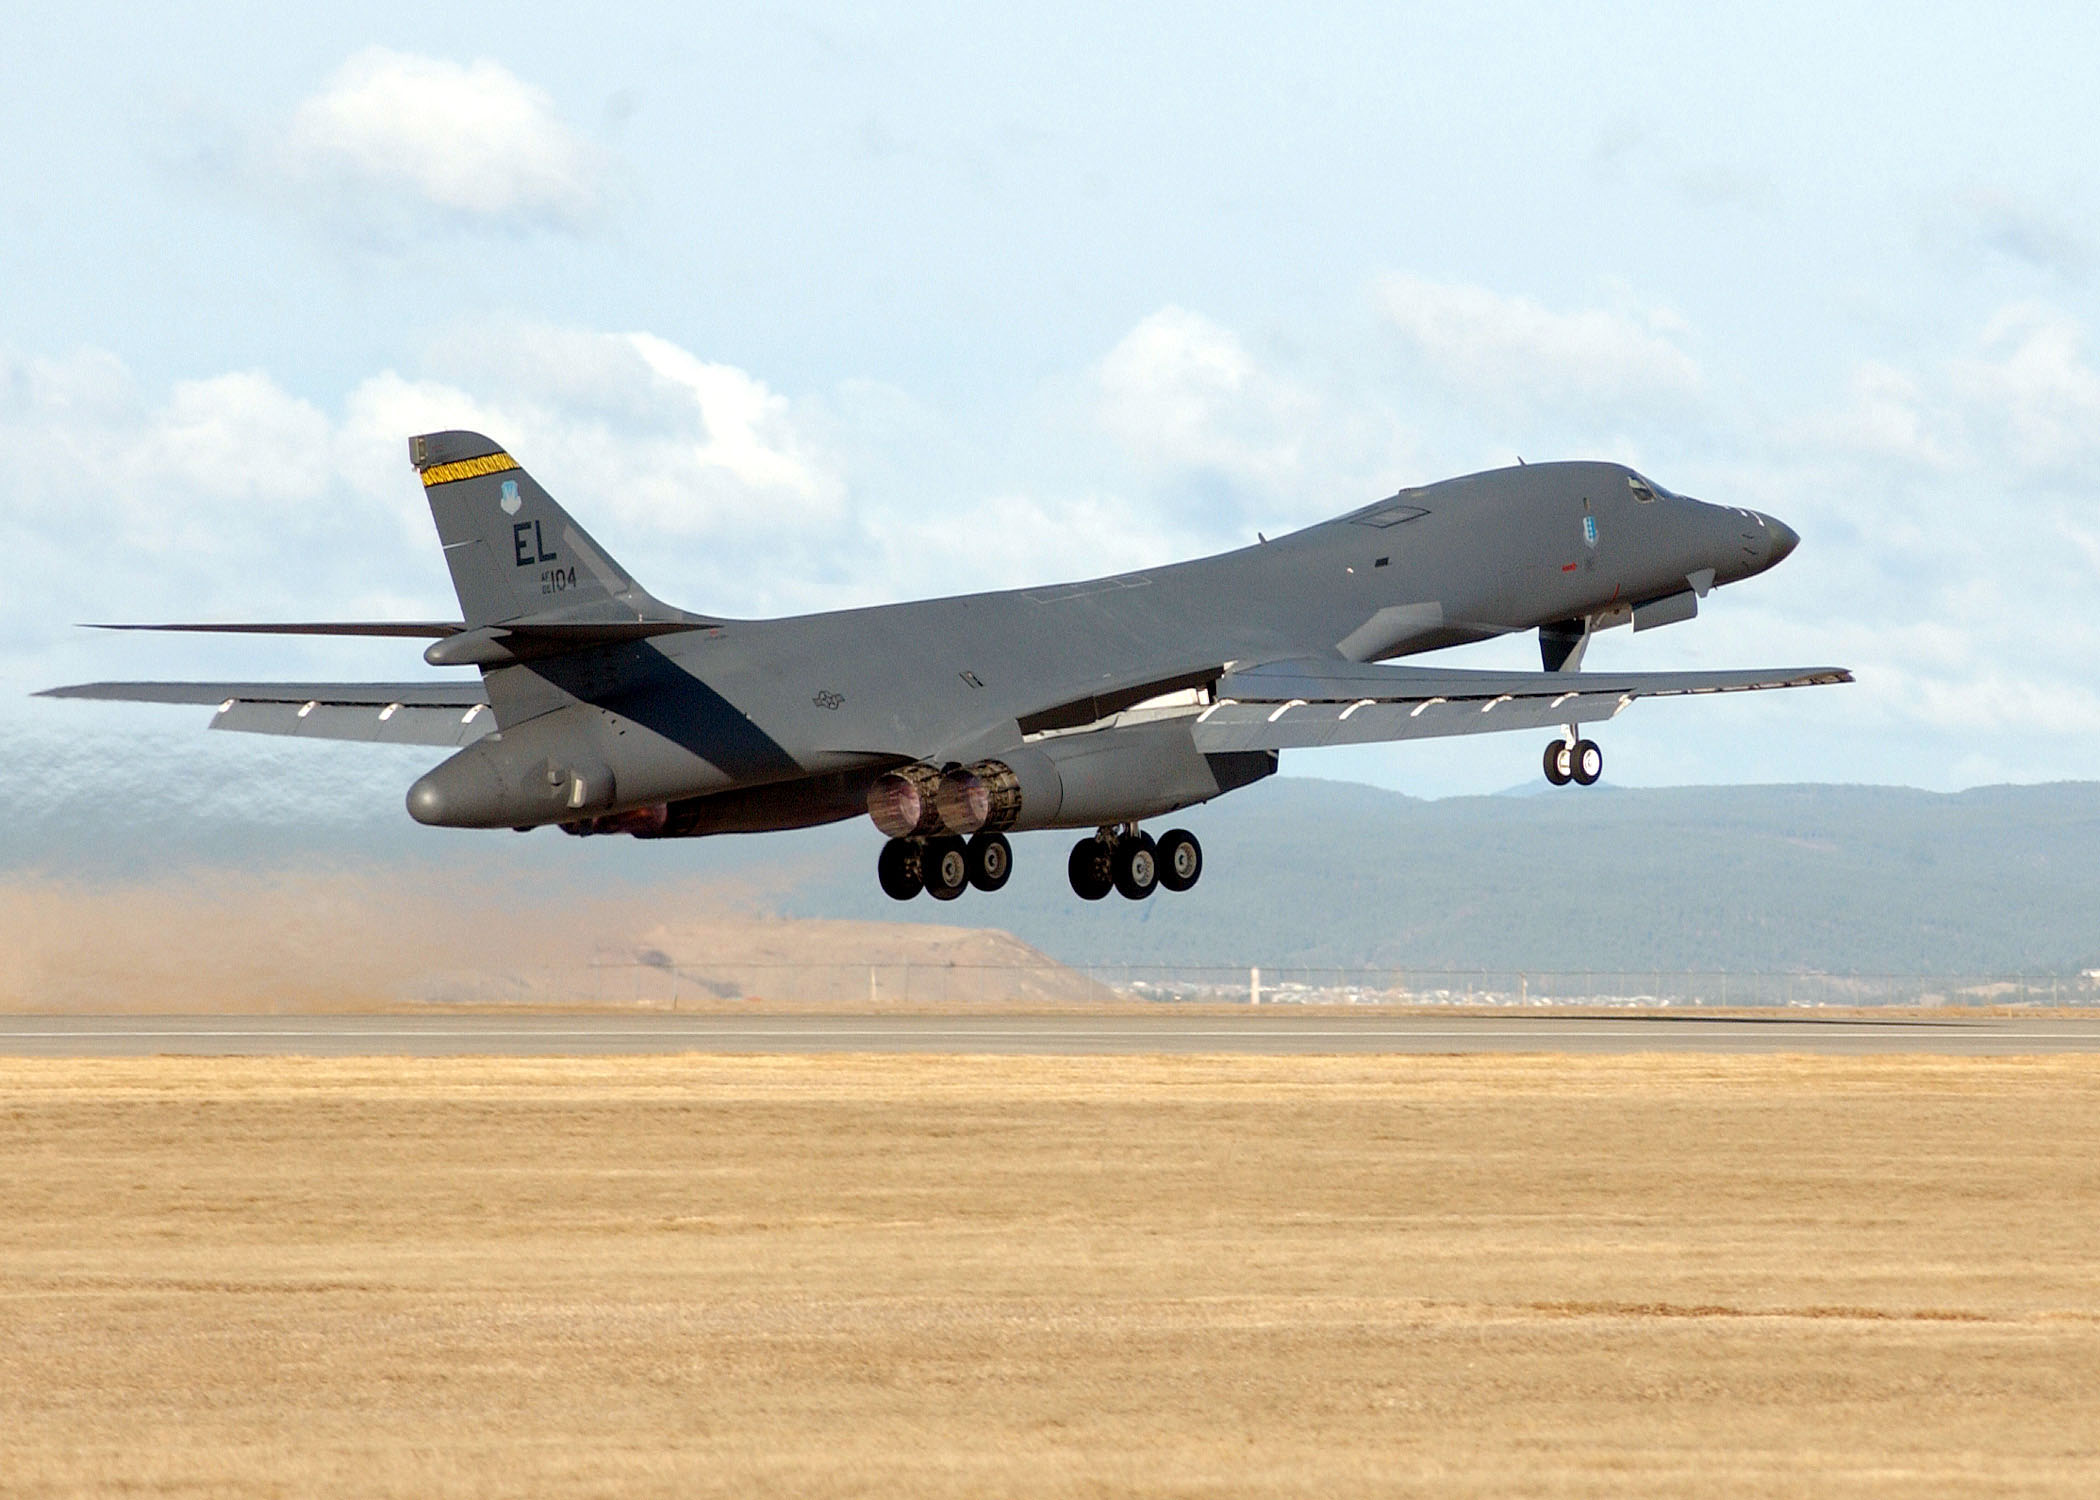 A B-1B Lancer lifts off from Ellsworth Air Force Base, one of South Dakota's largest employers.